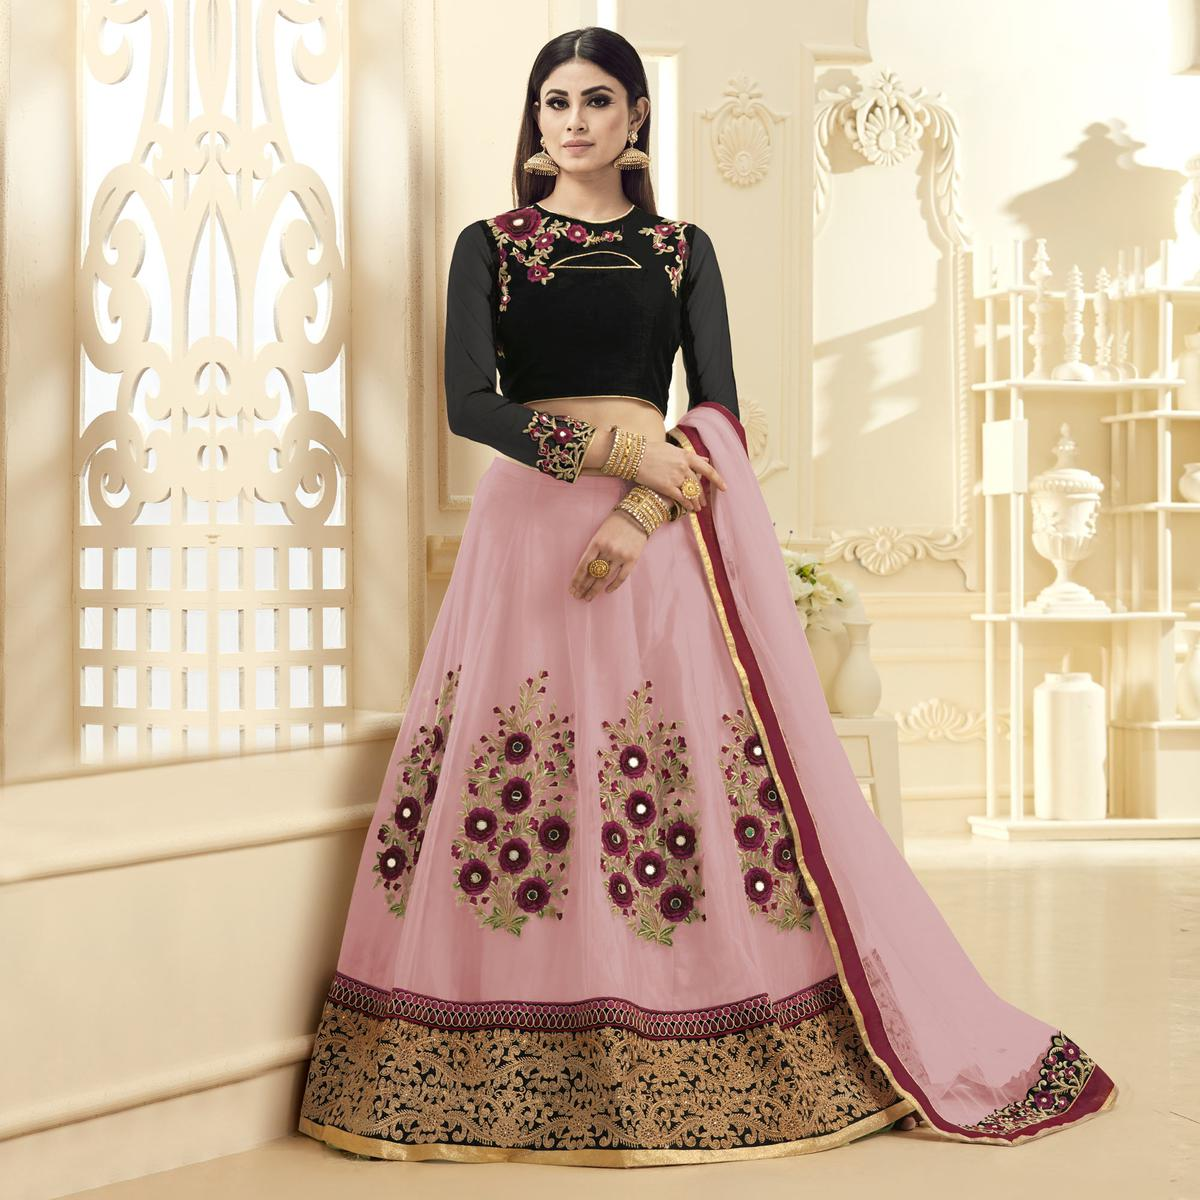 Eye-Catching Pink-Black Colored Designer Embroidered Netted Lehenga Choli